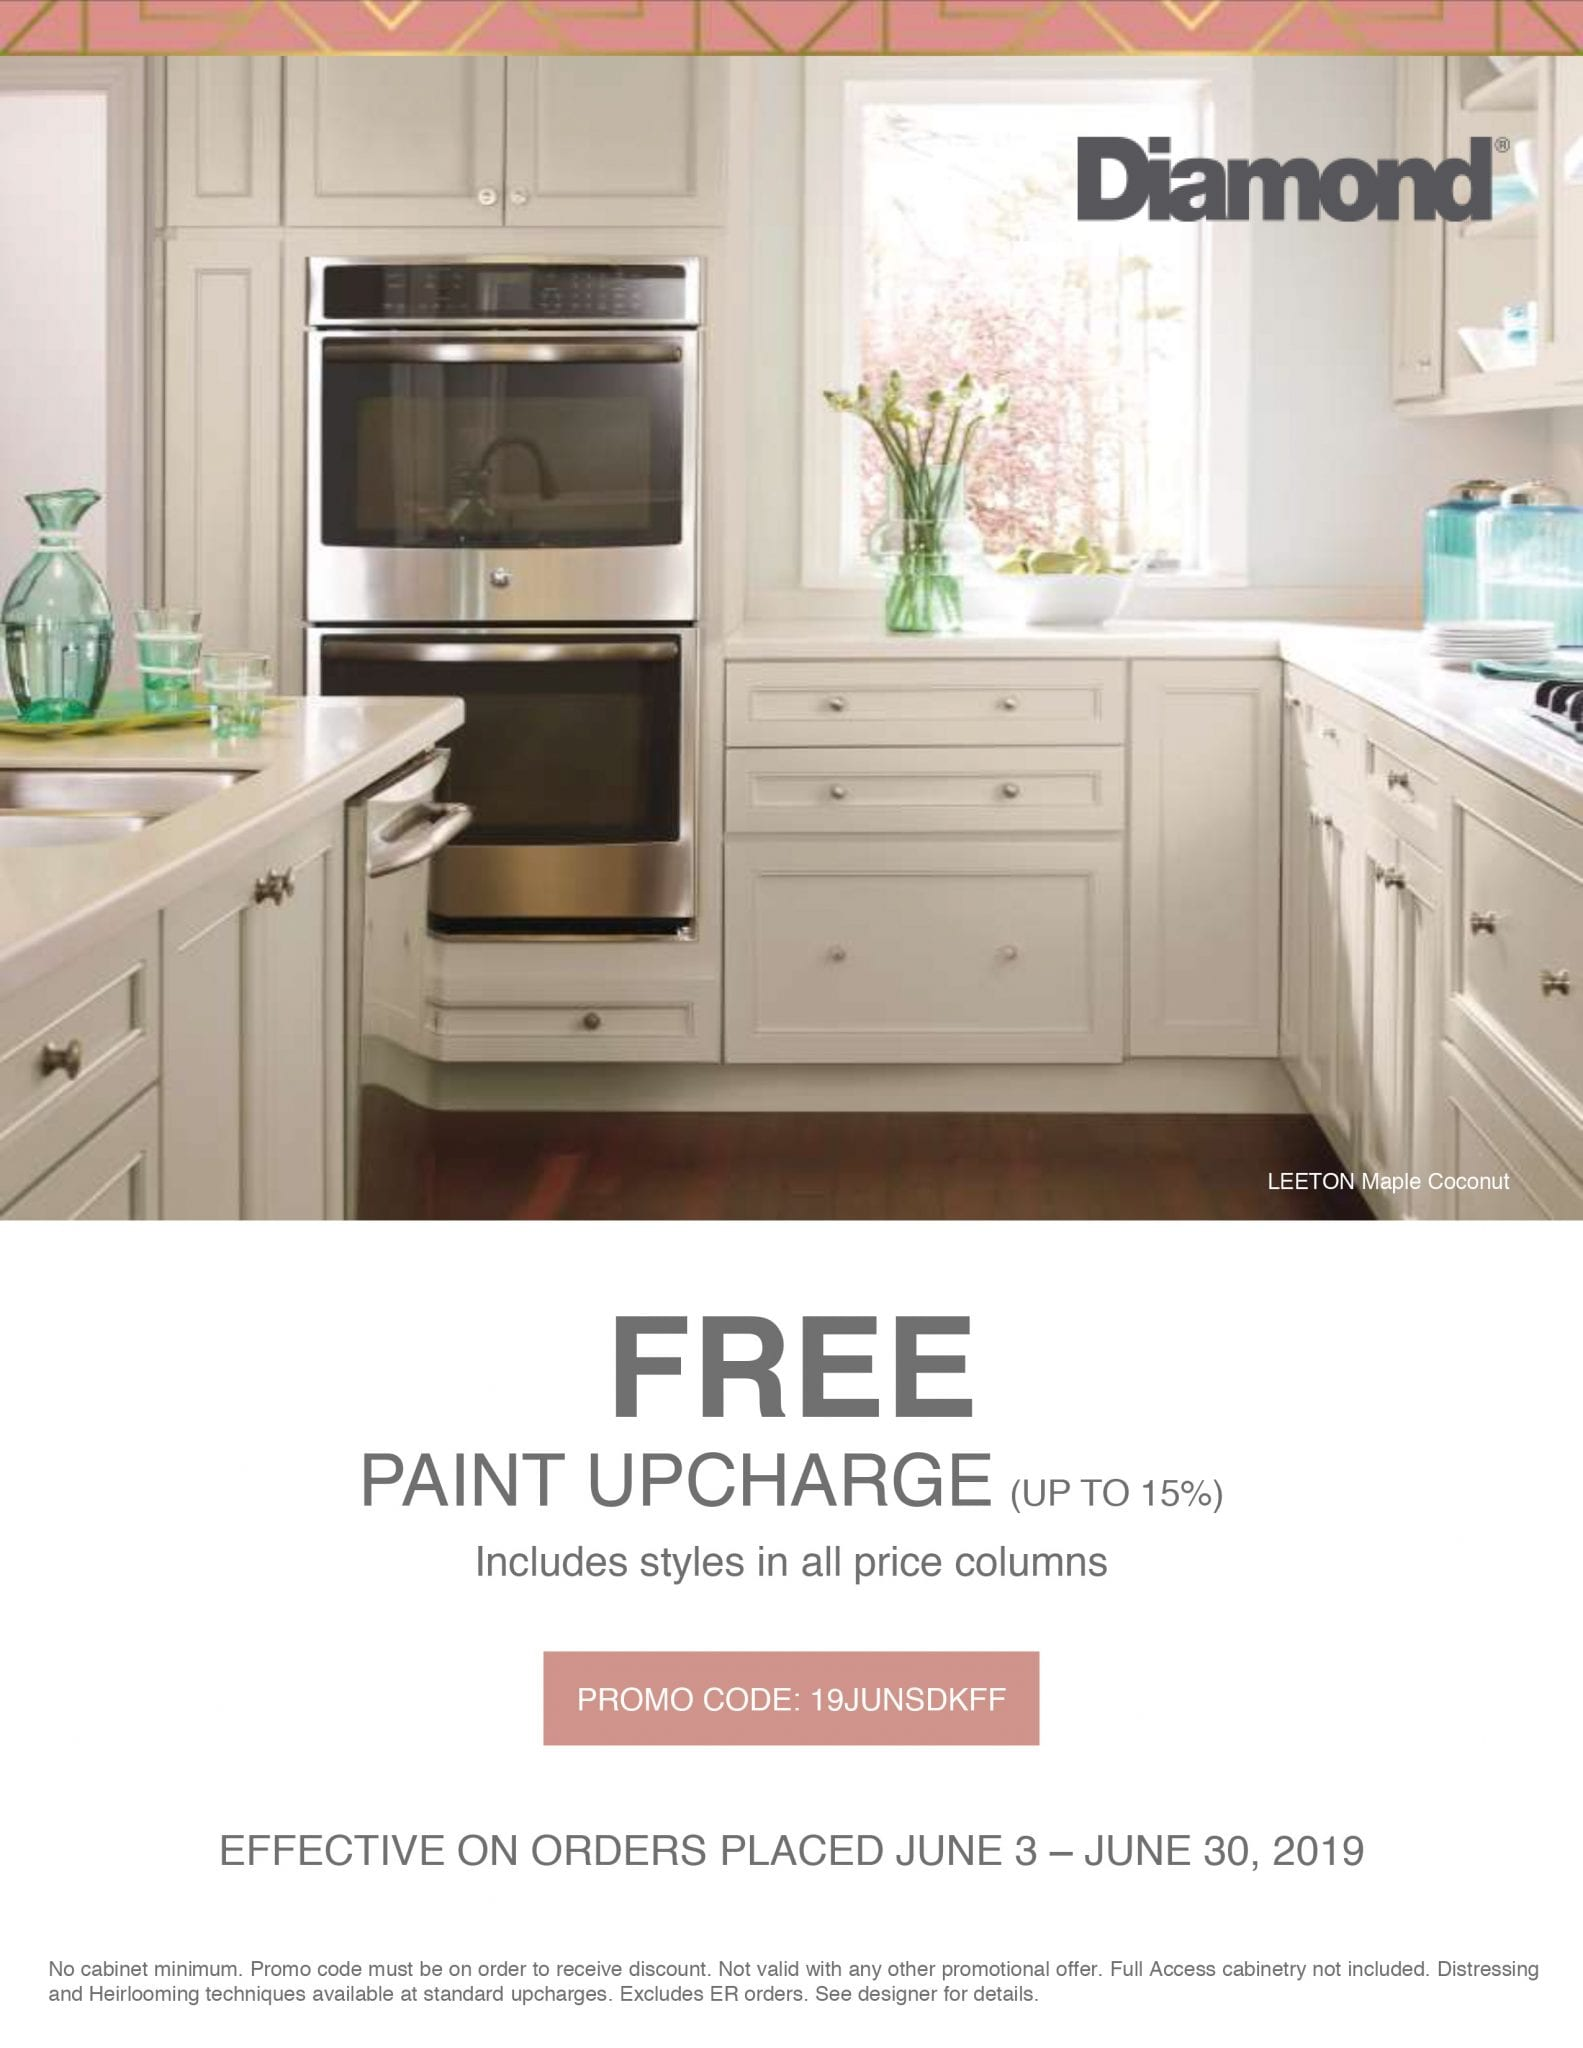 Diamond Cabinetry FREE Paint Up-charge Promotion